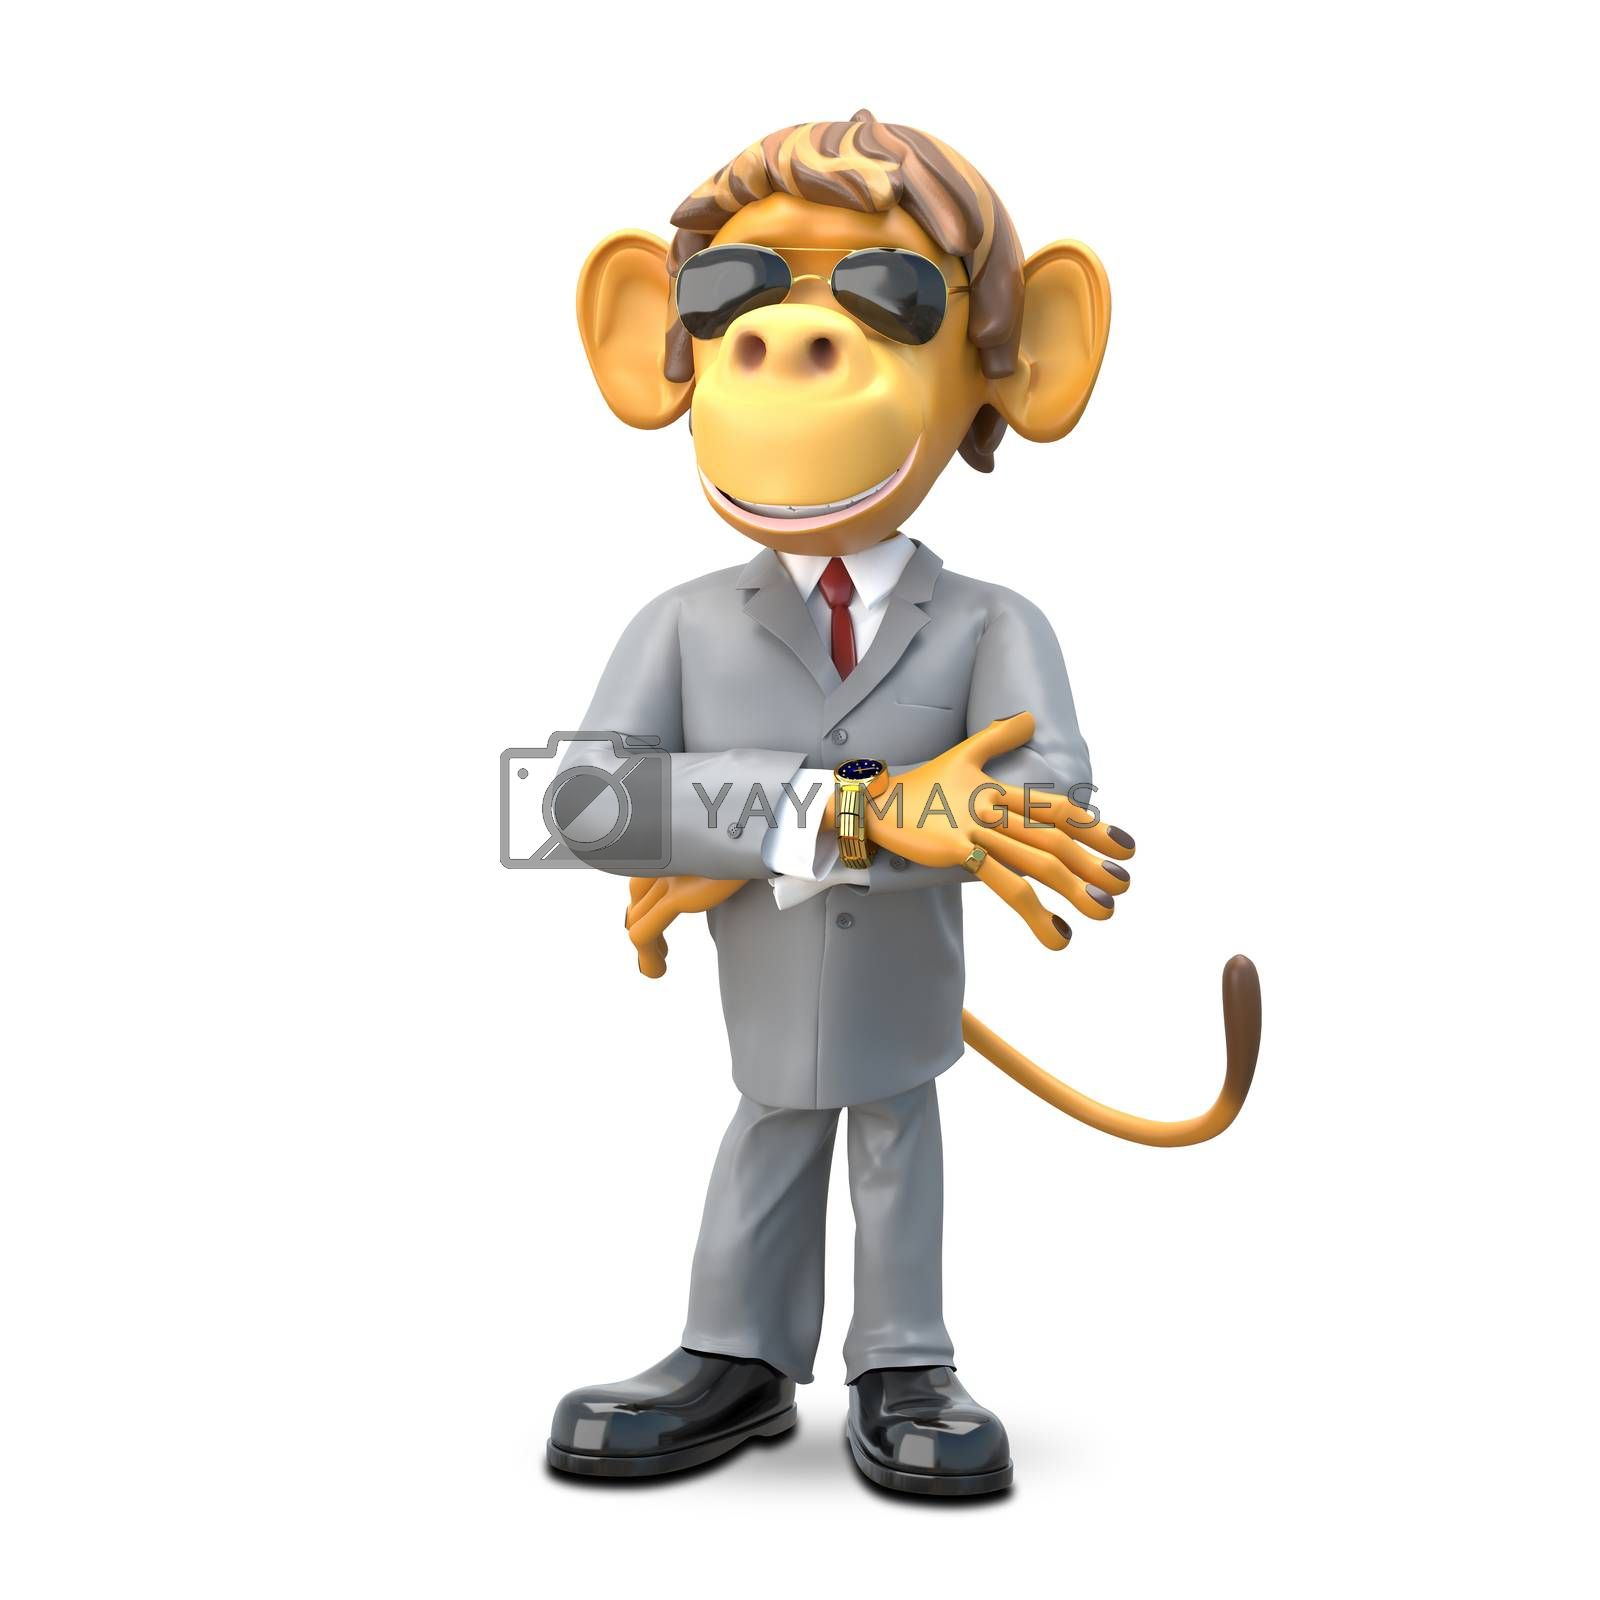 3D Illustration Monkey Boss on White Background